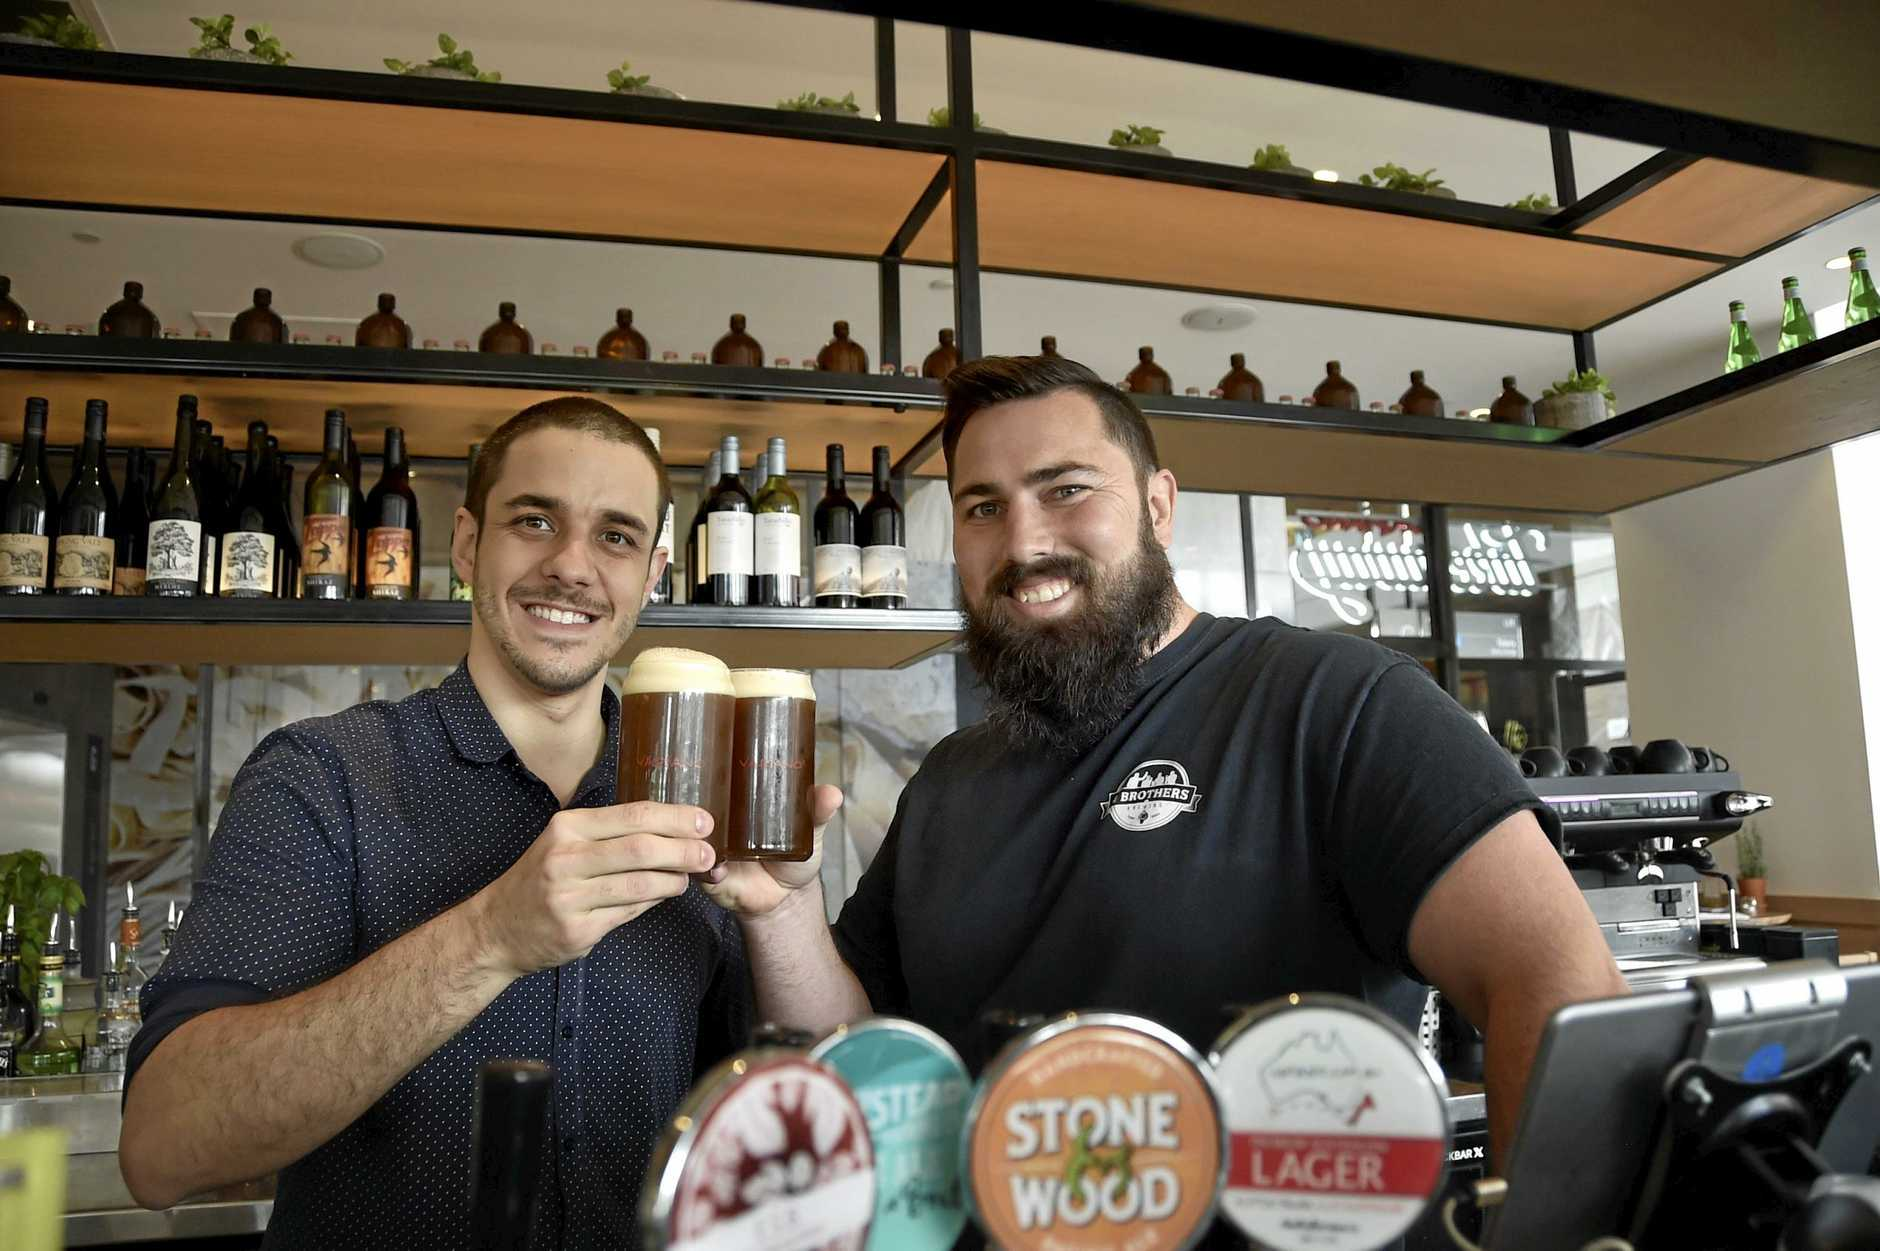 Vapiano Toowoomba manager Fabio Cantelli and 4 Brothers Brewing owner Adrian Cubit. Vapiano is the first Toowoomba restaurant to have 4 Brothers Brewing beer on tap. May 2018